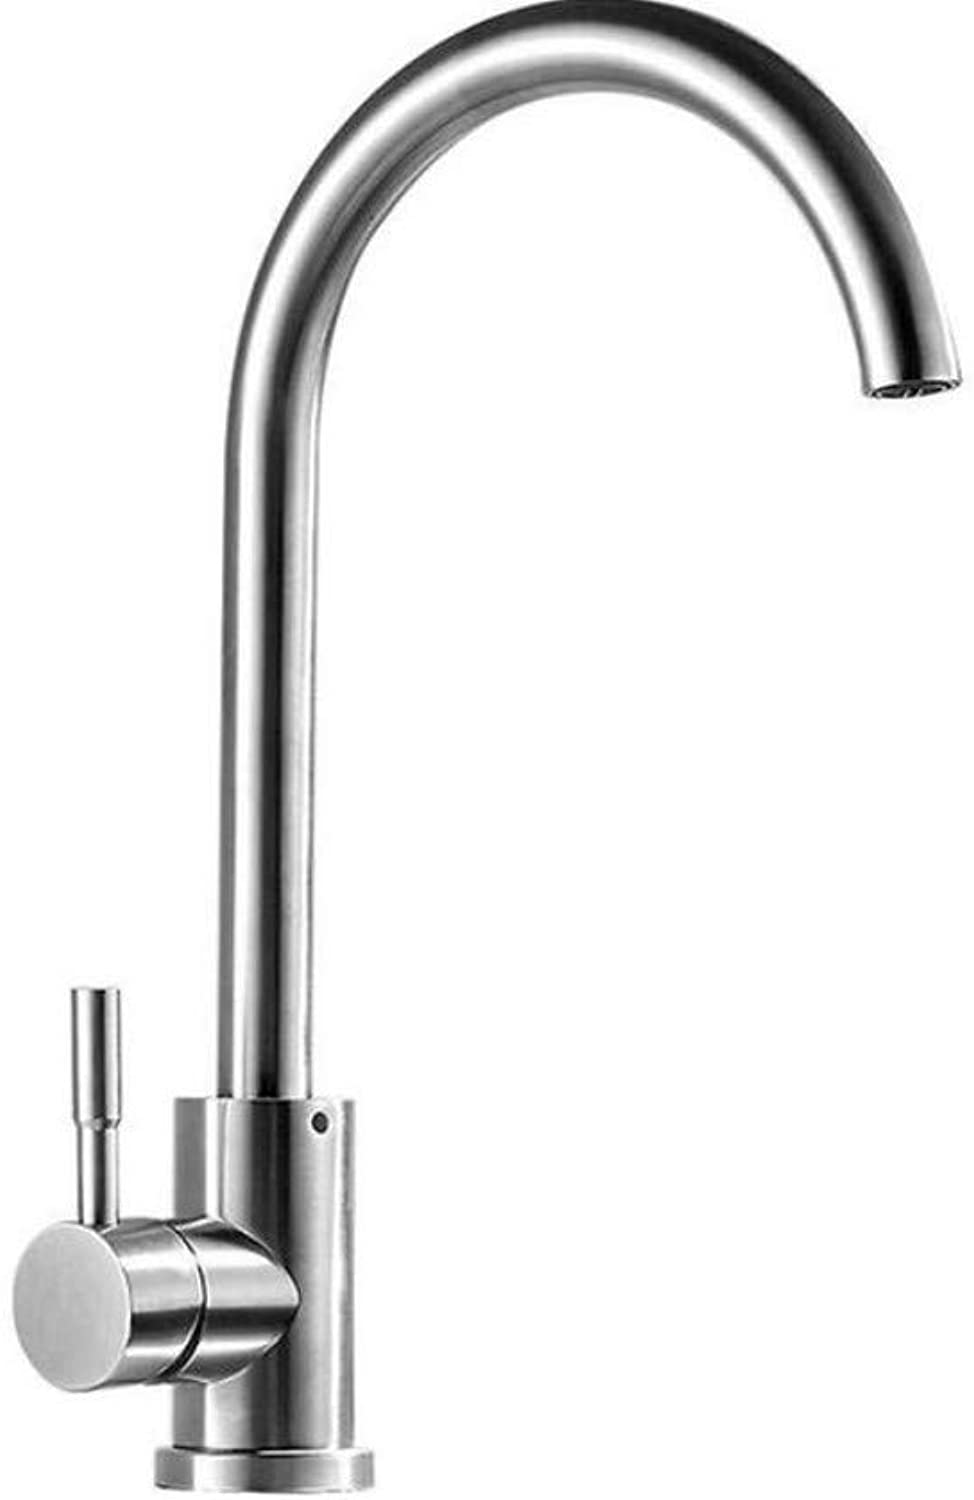 Taps Kitchen Sinkhigh Quality Total 304 Stainless Steel No Lead Kitchen Sink Faucet Sink Tap 360 Swivel Mixer Kitchen Faucet